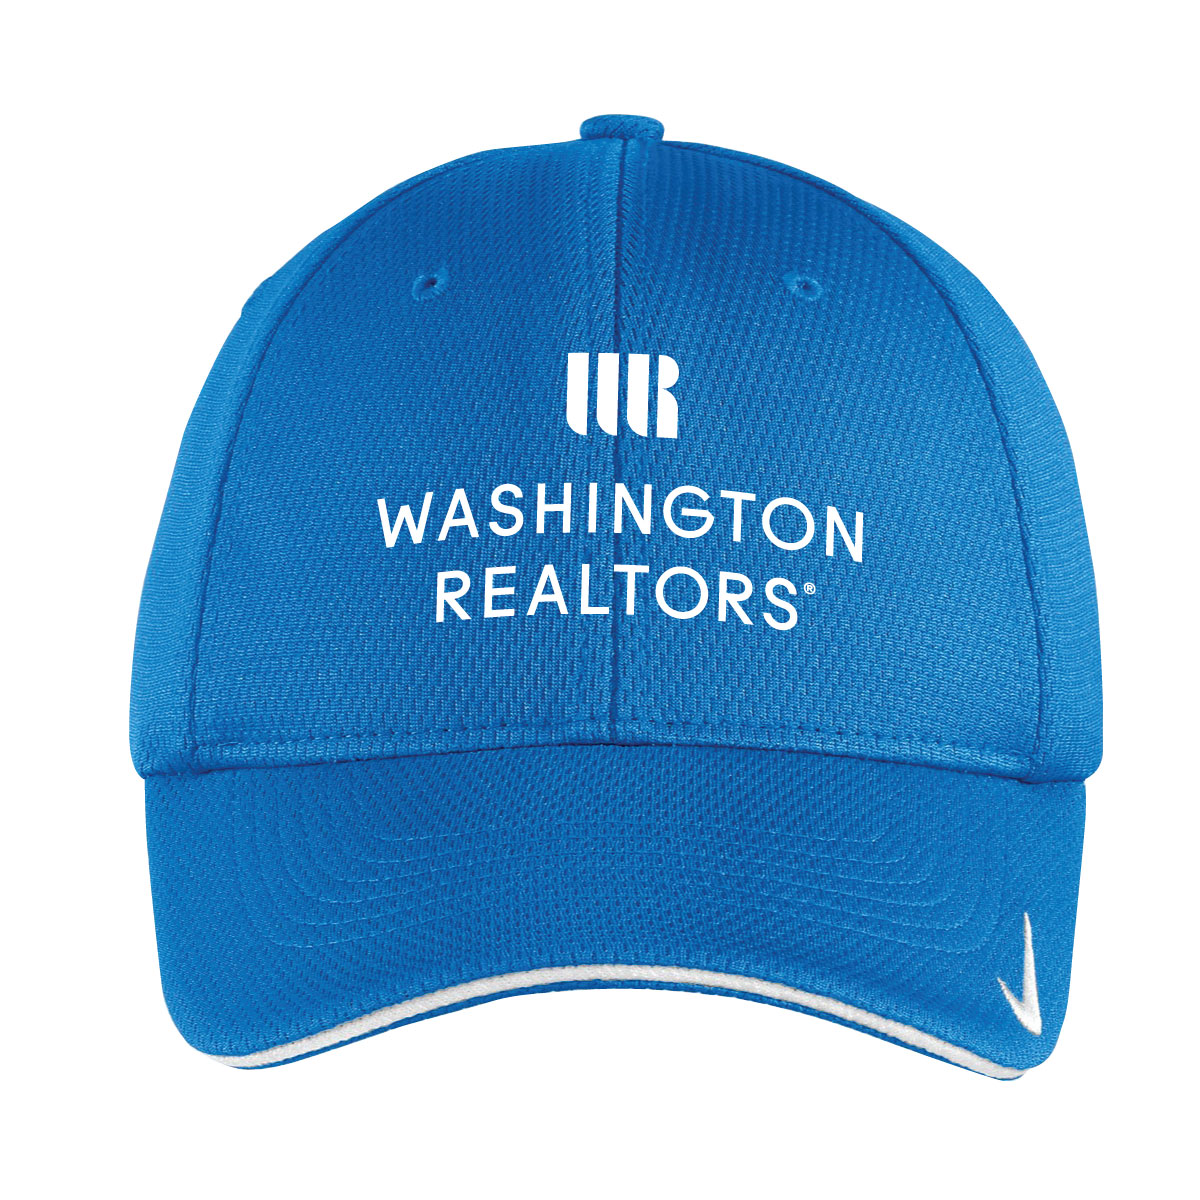 Washington REALTORS® Dri-FIT Mesh Swoosh Flex Sandwich Cap